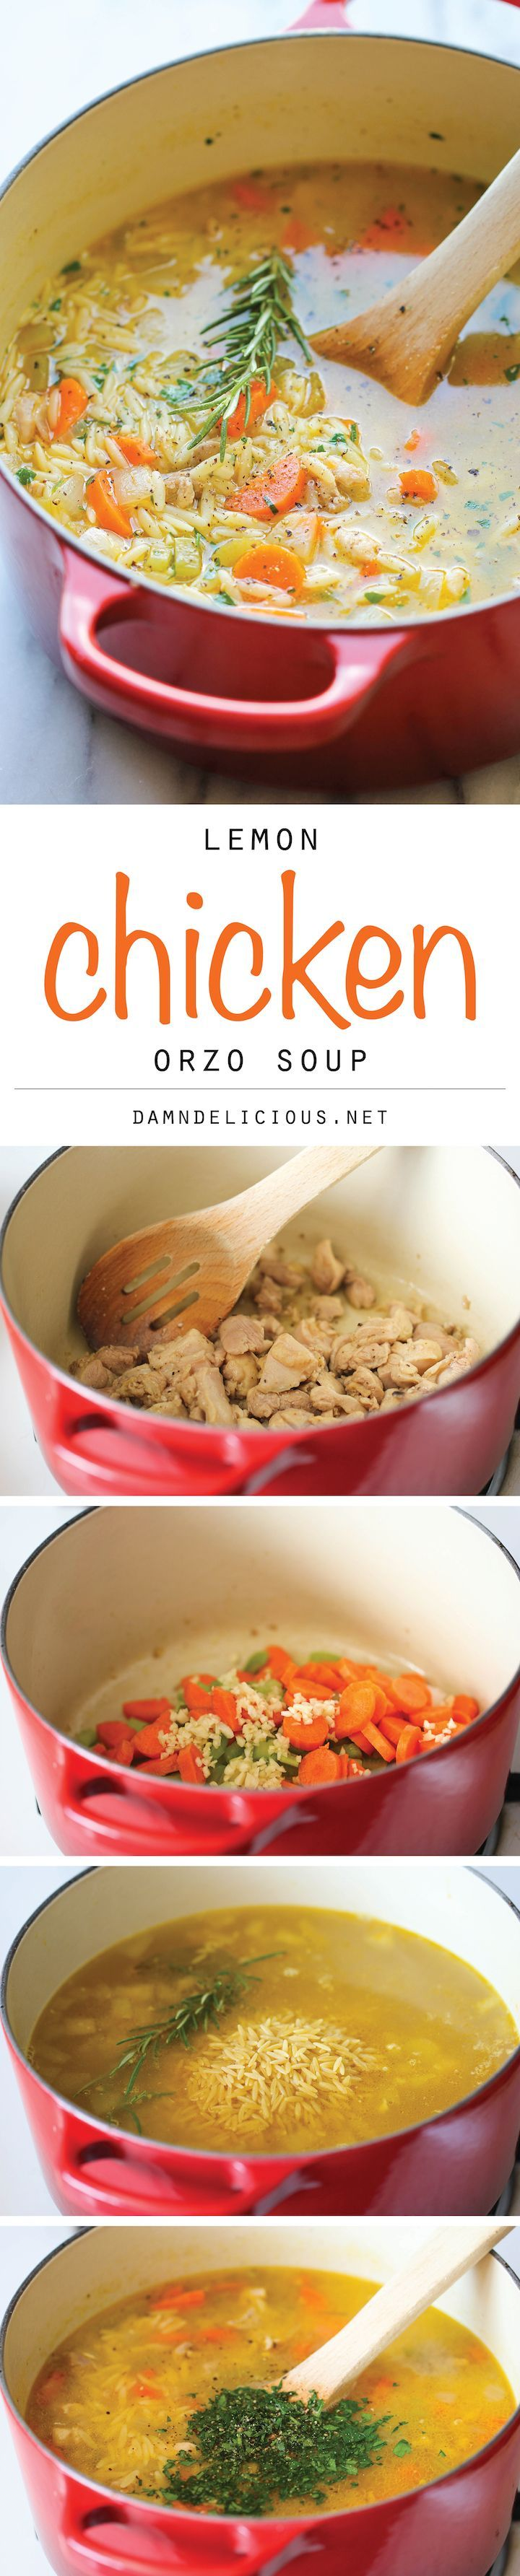 Chicken Orzo Soup Lemon Chicken Orzo Soup - Chockfull of hearty veggies and tender chicken in a refreshing lemony broth. It is PURE COMFORT in a bowl!Lemon Chicken Orzo Soup - Chockfull of hearty veggies and tender chicken in a refreshing lemony broth. It is PURE COMFORT in a bowl!